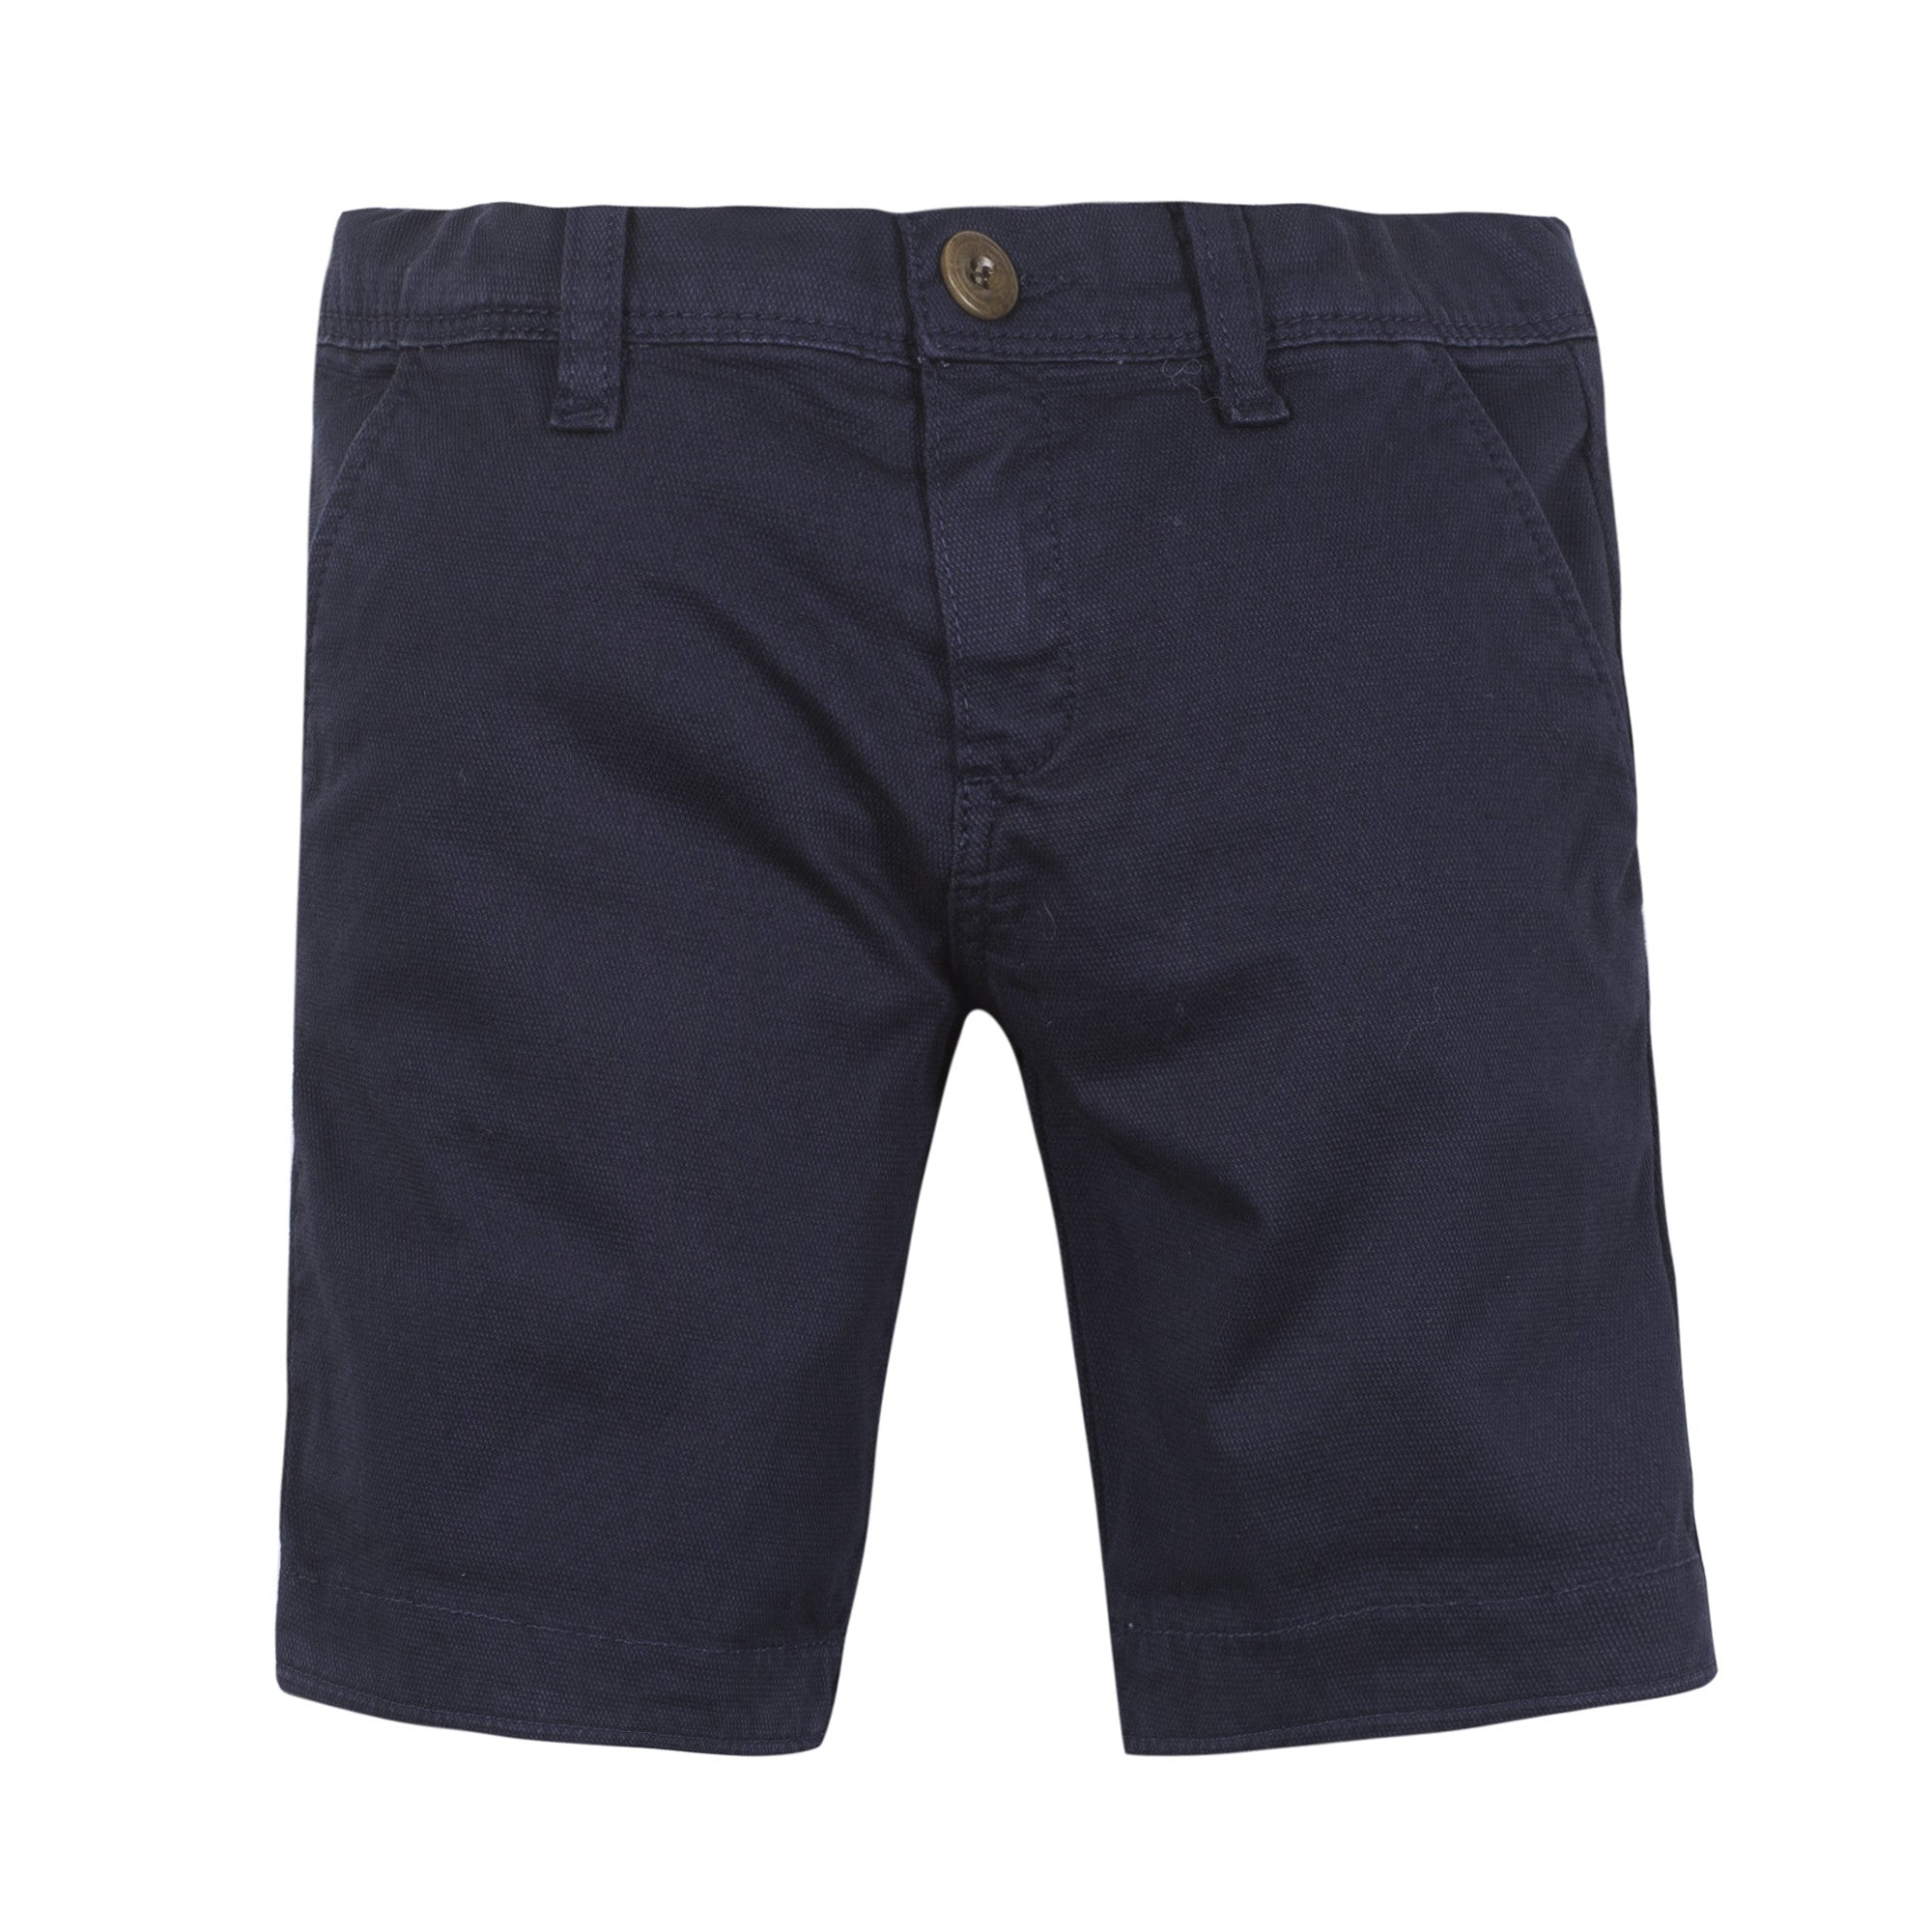 Paul Smith Navy Canvas Bermuda - Ladida